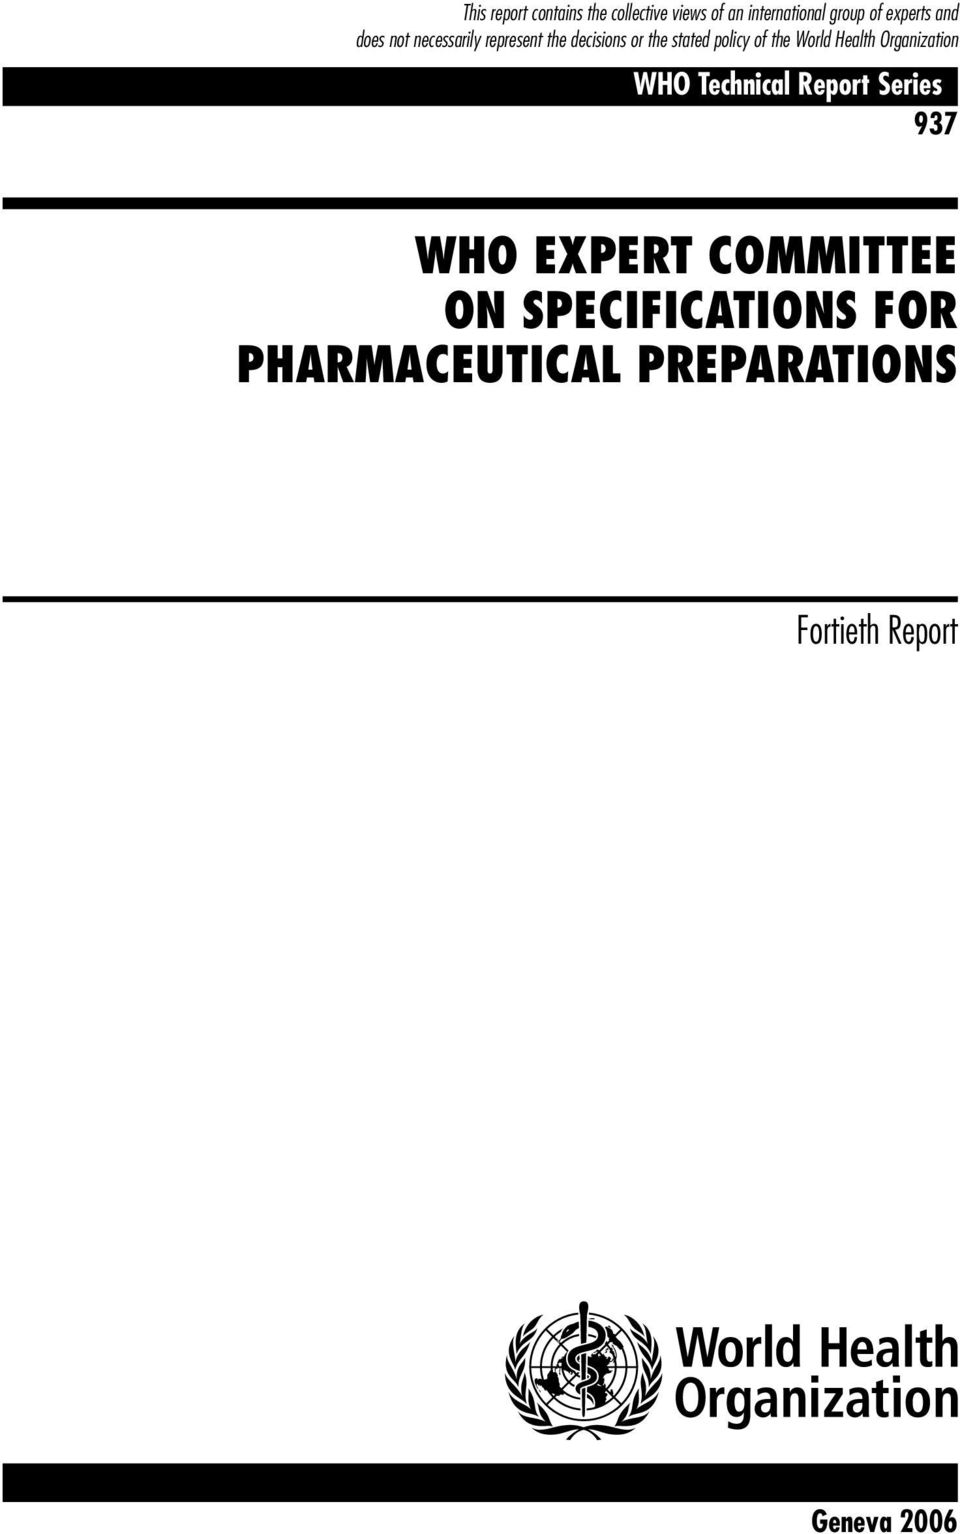 WHO EXPERT COMMITTEE ON SPECIFICATIONS FOR PHARMACEUTICAL PREPARATIONS Fortieth Report Geneva 2006 WHO Library